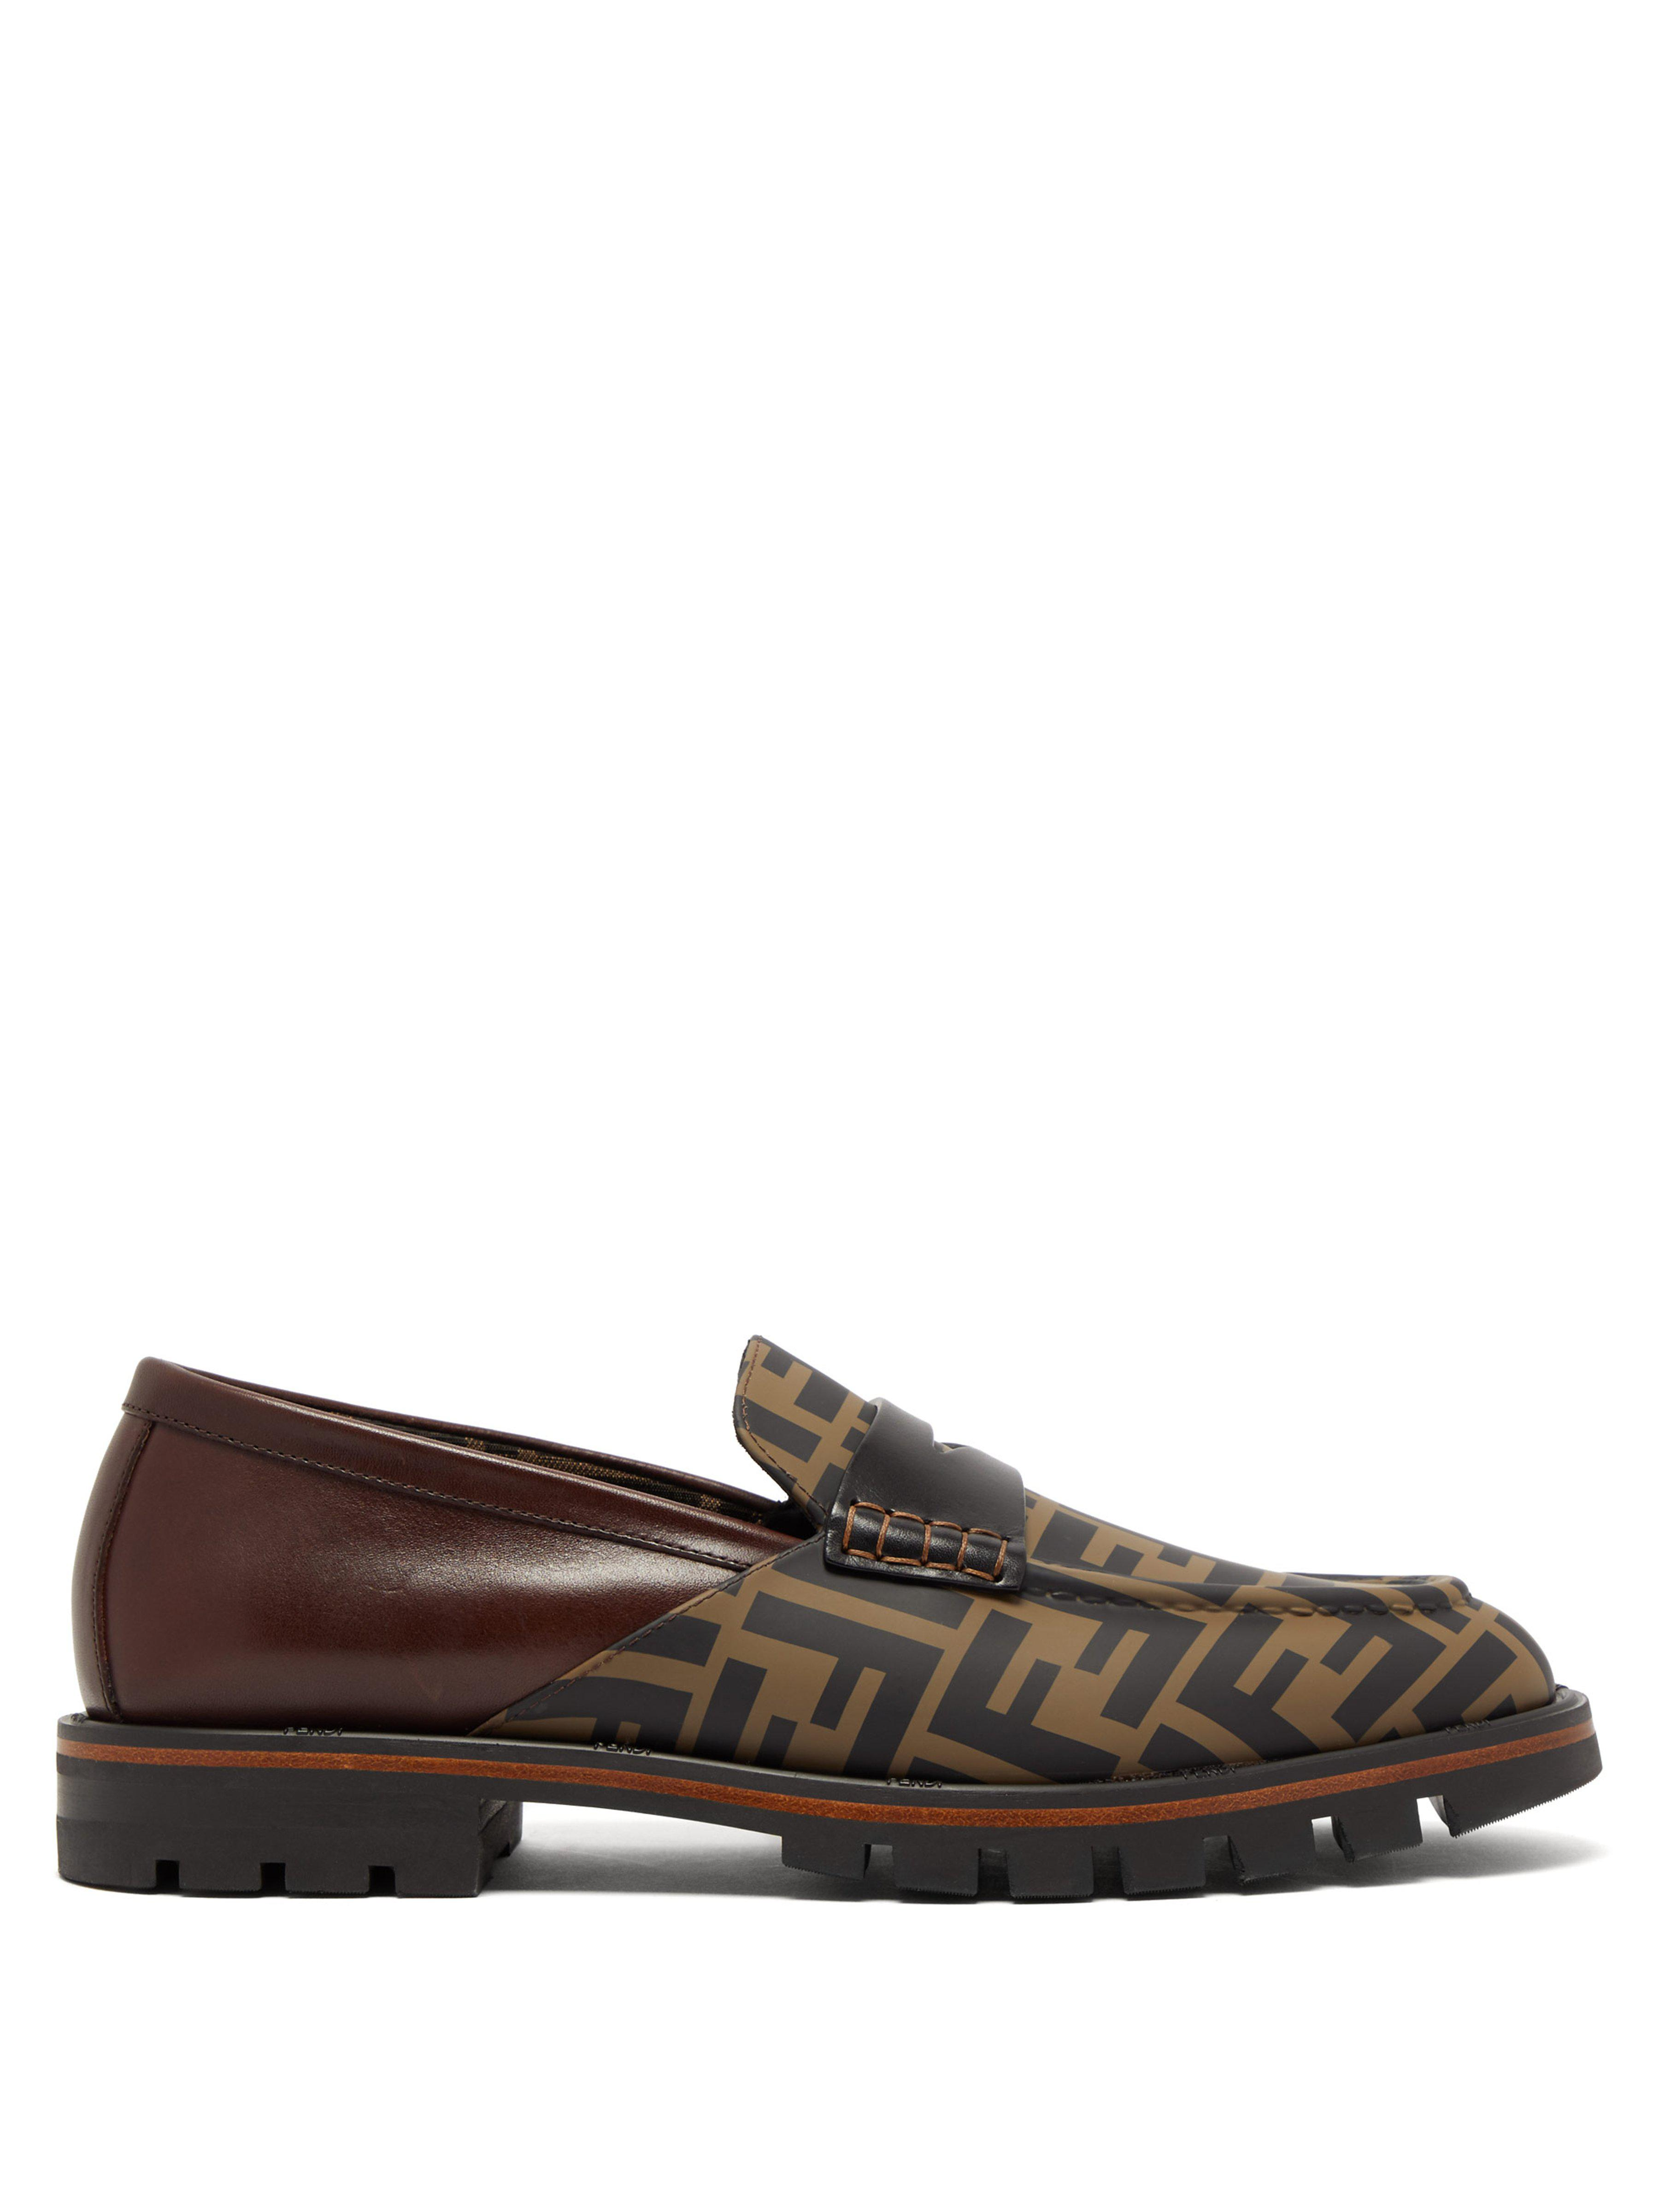 b0468eef45a Fendi Logo Print Leather Penny Loafers in Brown for Men - Save 50 ...